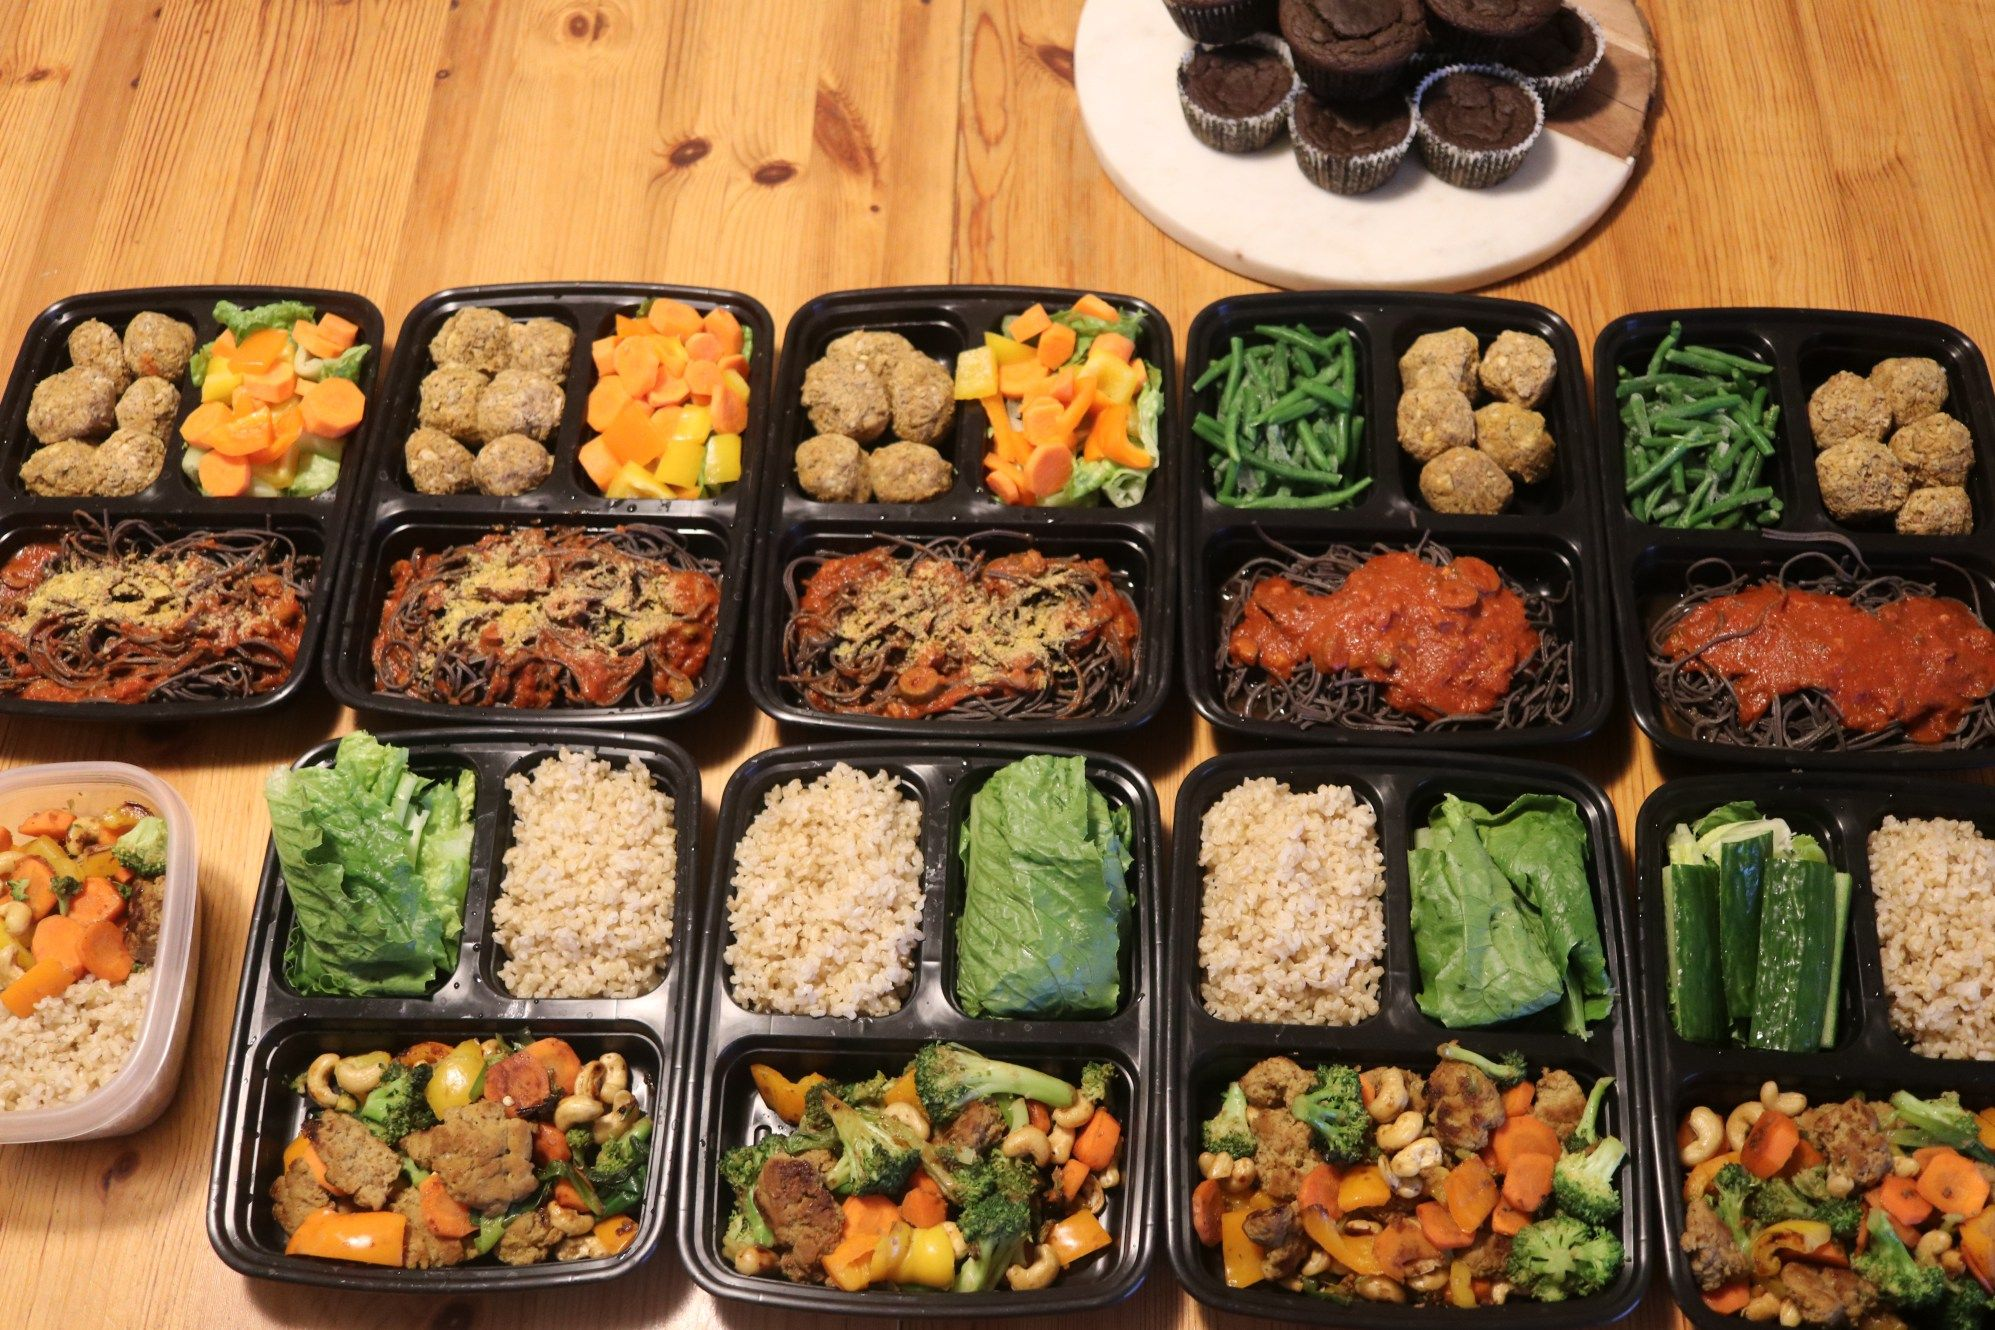 High Protein Vegan Meal Prep For The Week High Protein Vegan Recipes Cheap Vegan Meals Vegan Meal Plans